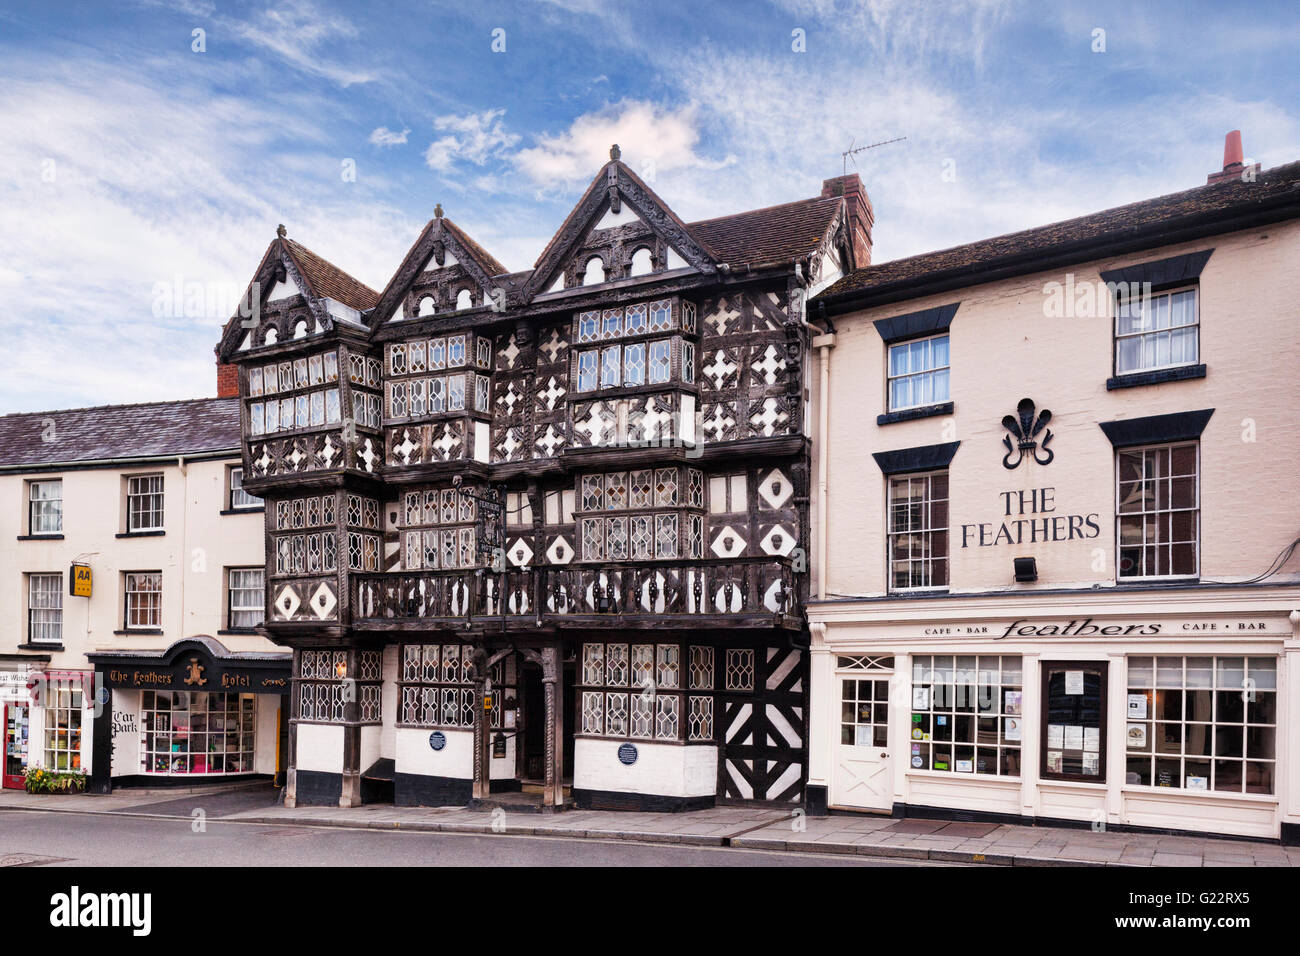 The Feathers Hotel, an ornate, Grade 1 listed, Tudor style building in Ludlow, Shropshire, England, UK - Stock Image